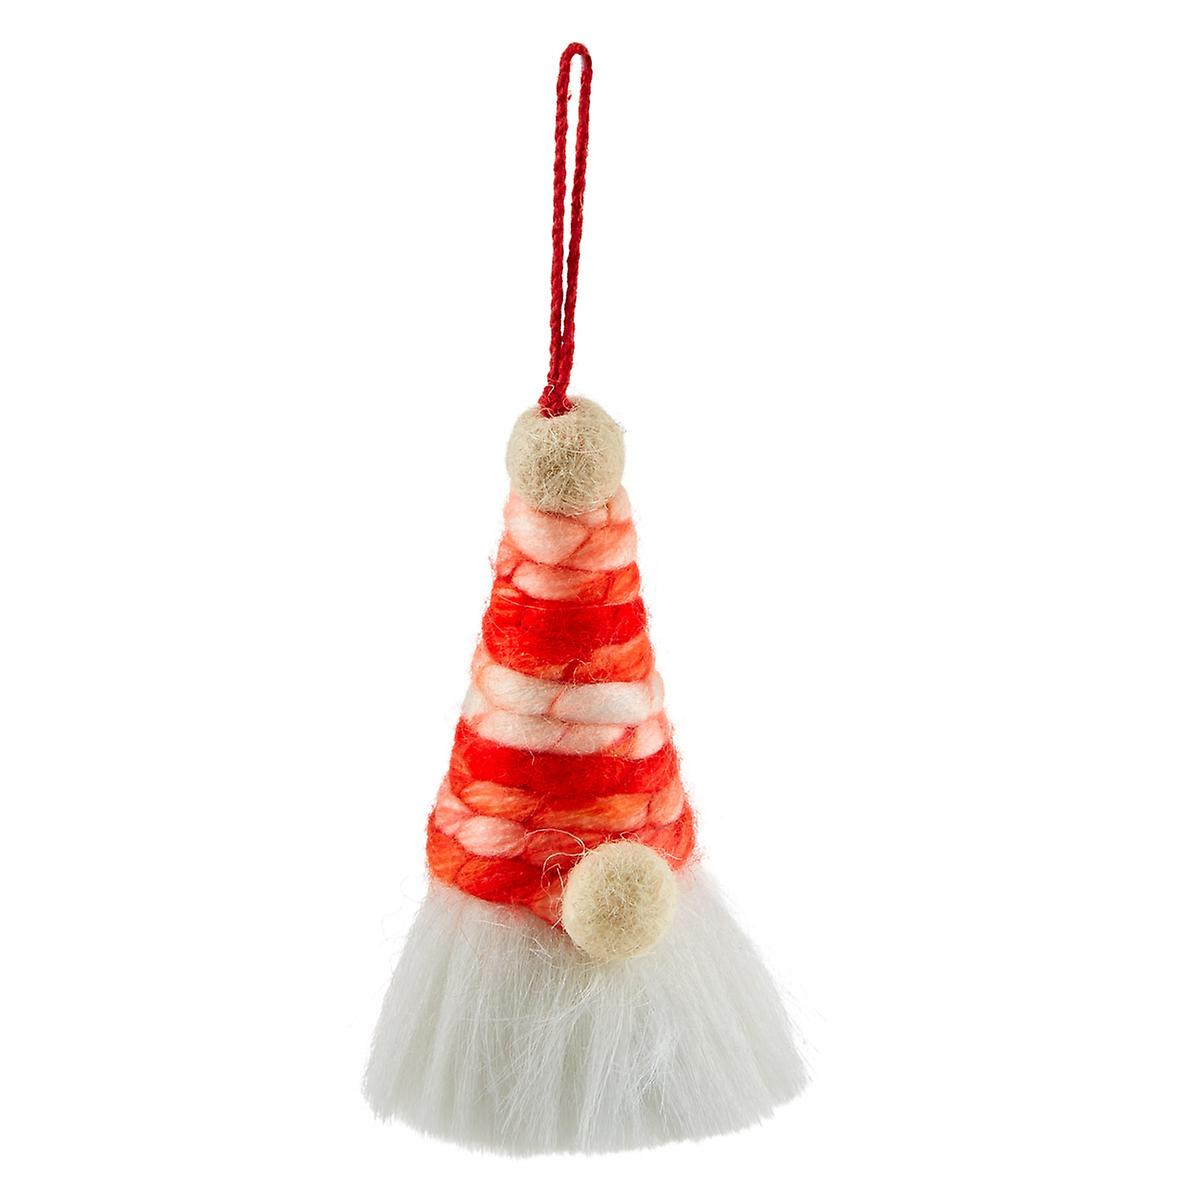 Red Yarn Gnome Tie-On Ornament